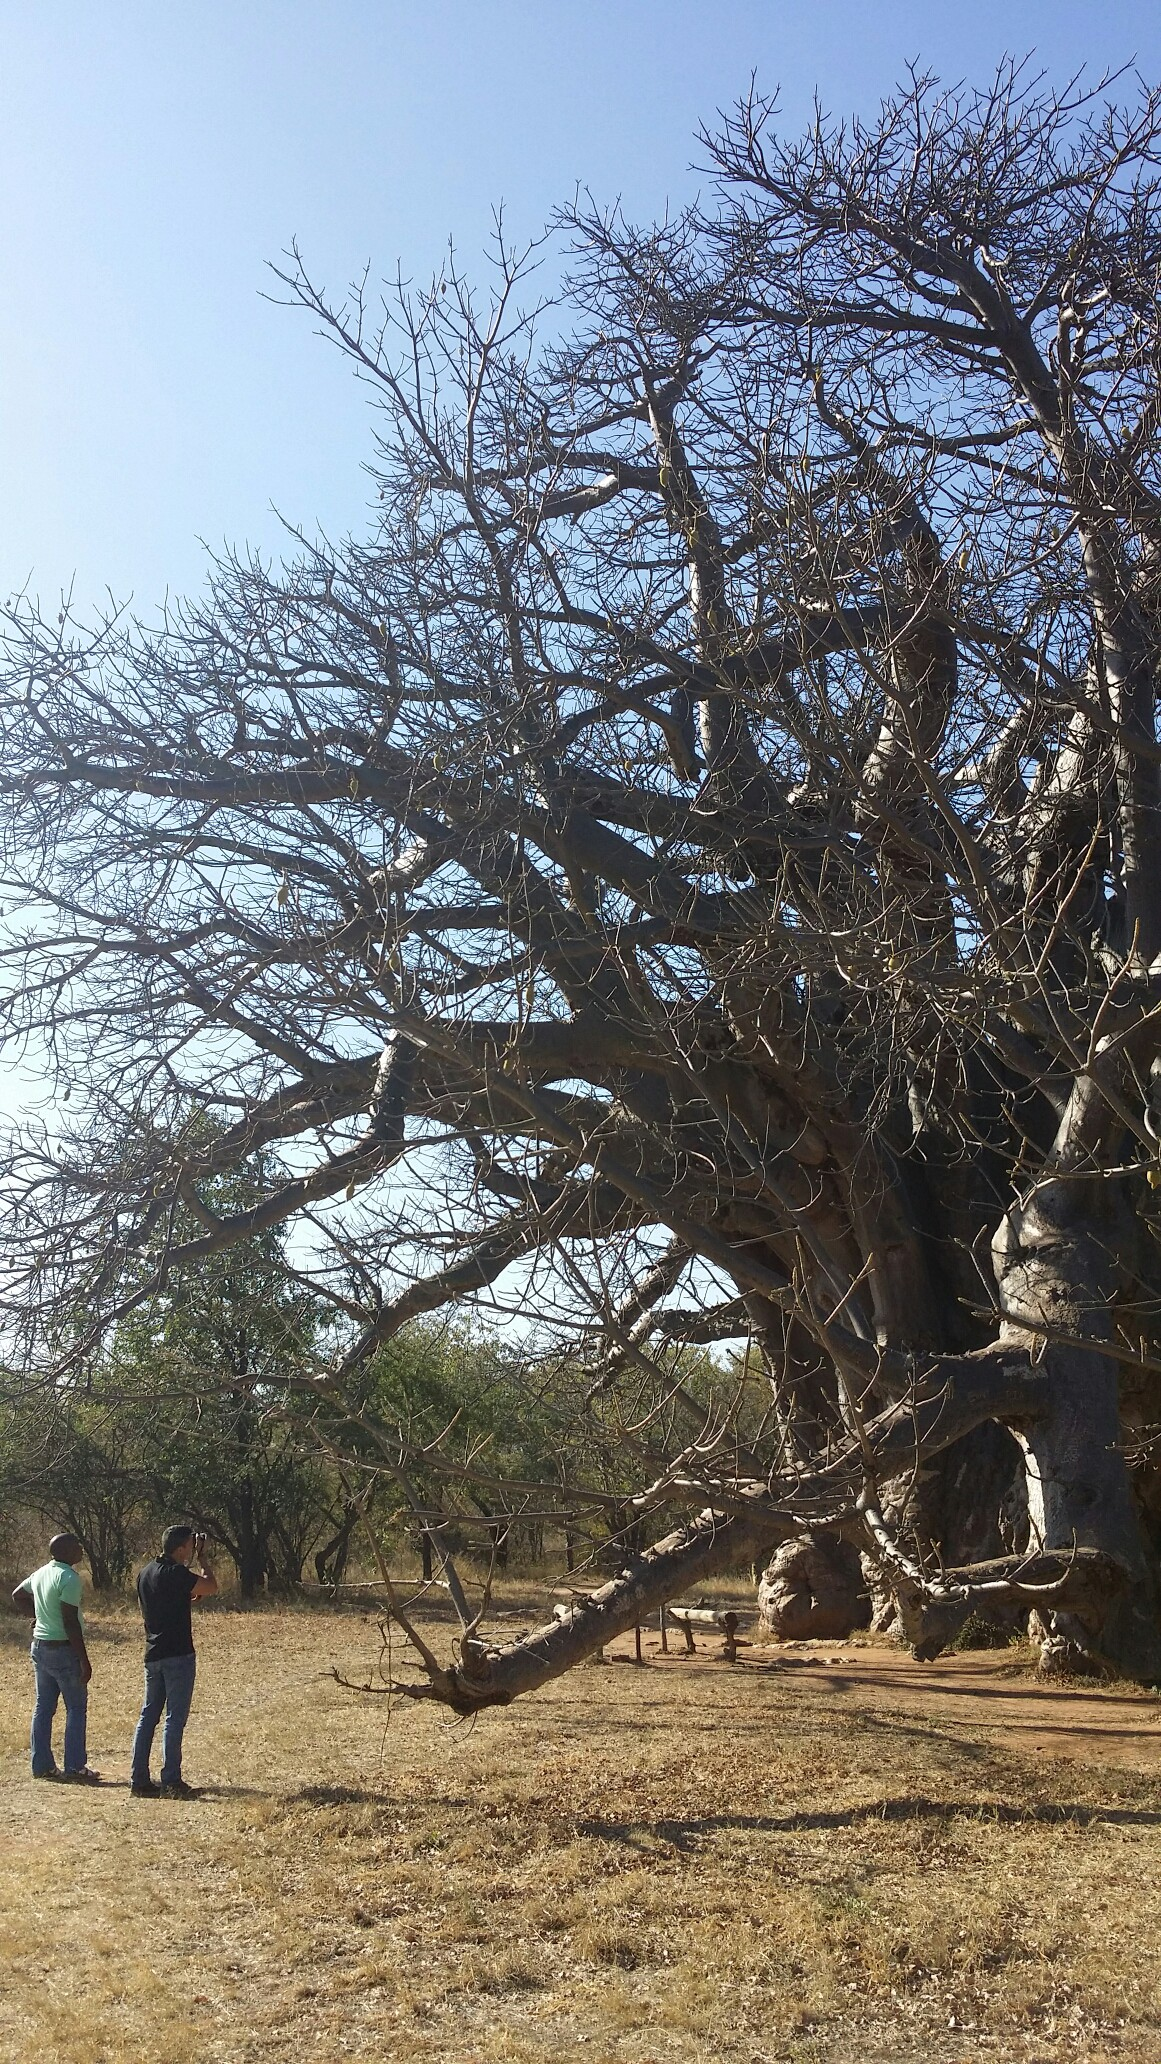 Sagole Baobab – Largest Baobab Tree in South Africa in terms of overall size and dates to almost 2,000 years old.